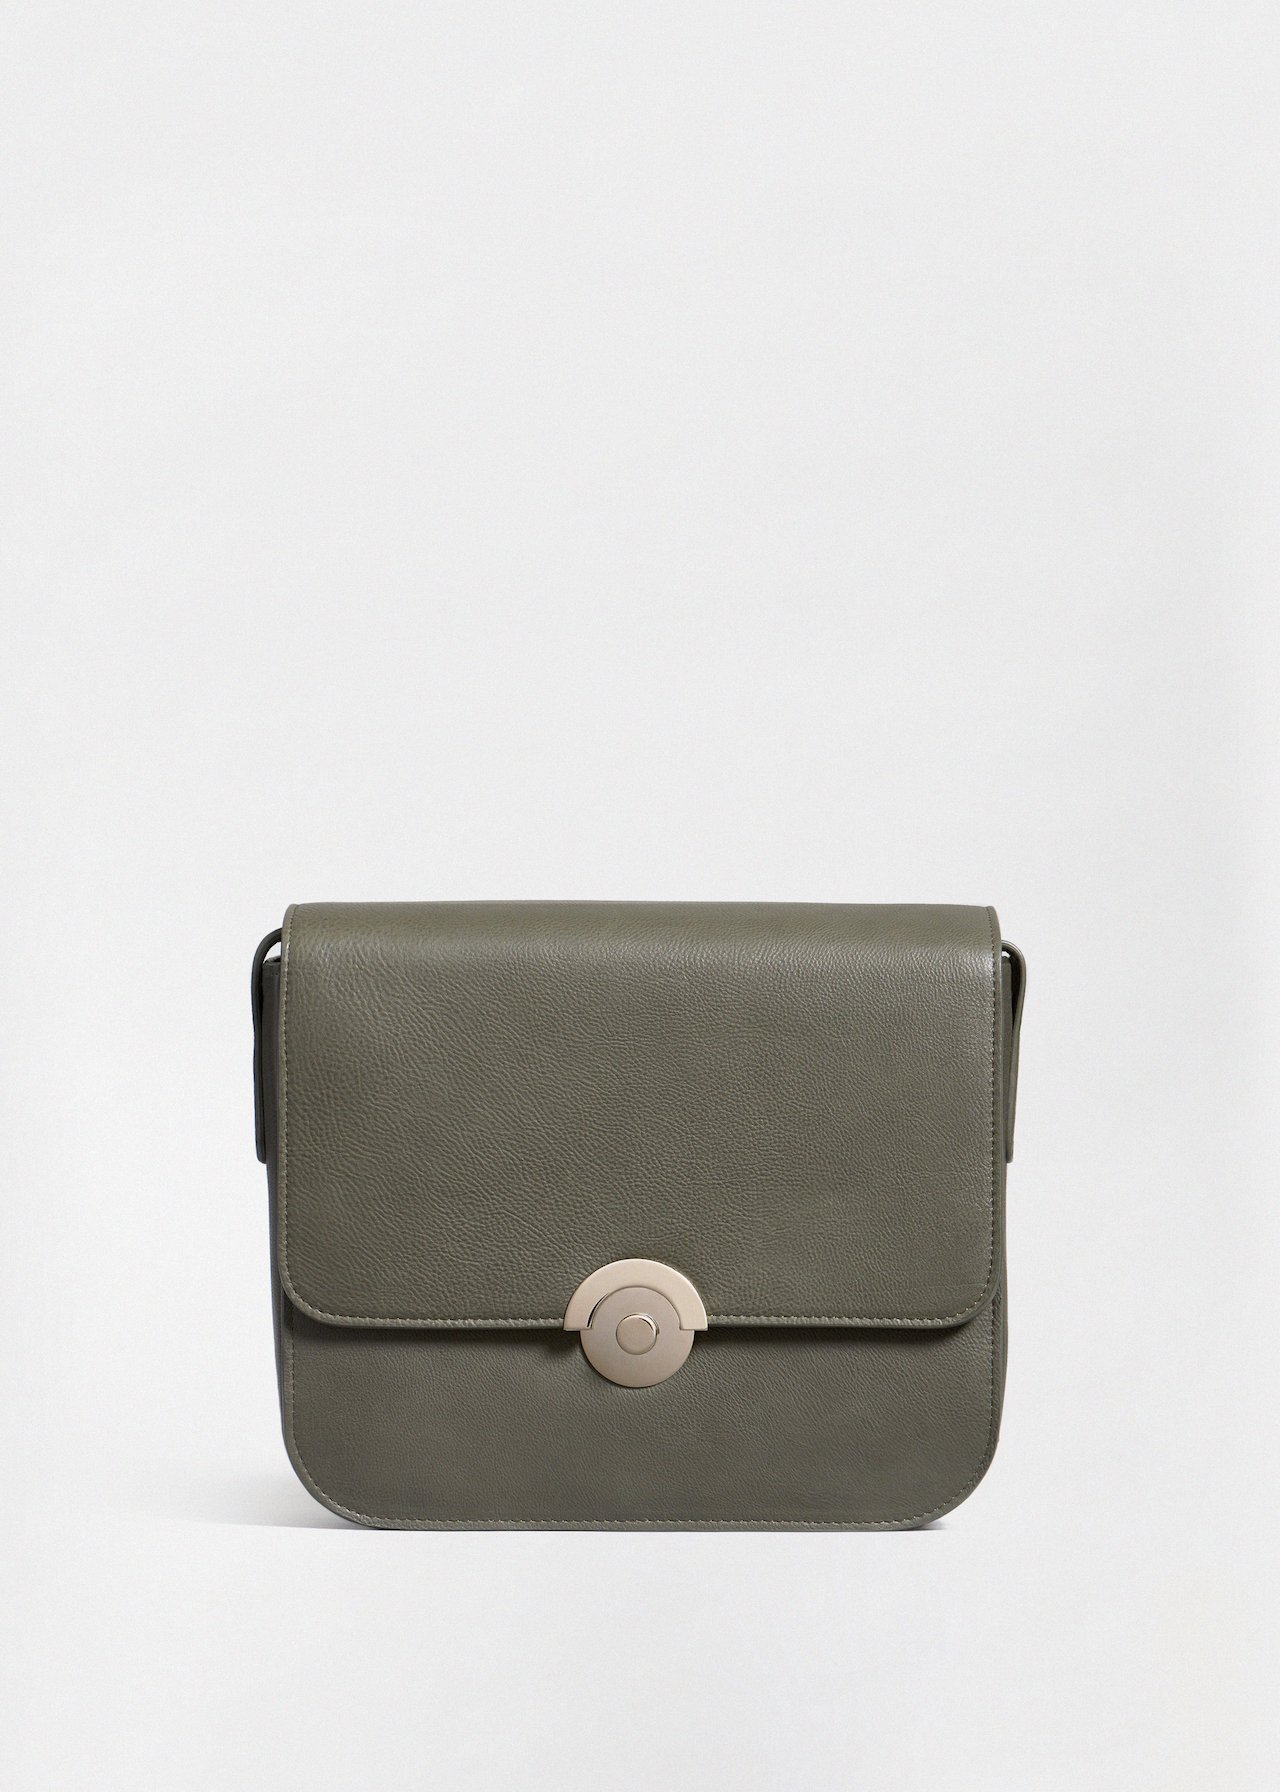 Box Bag in Pebbled Leather - Olive - Co Collections